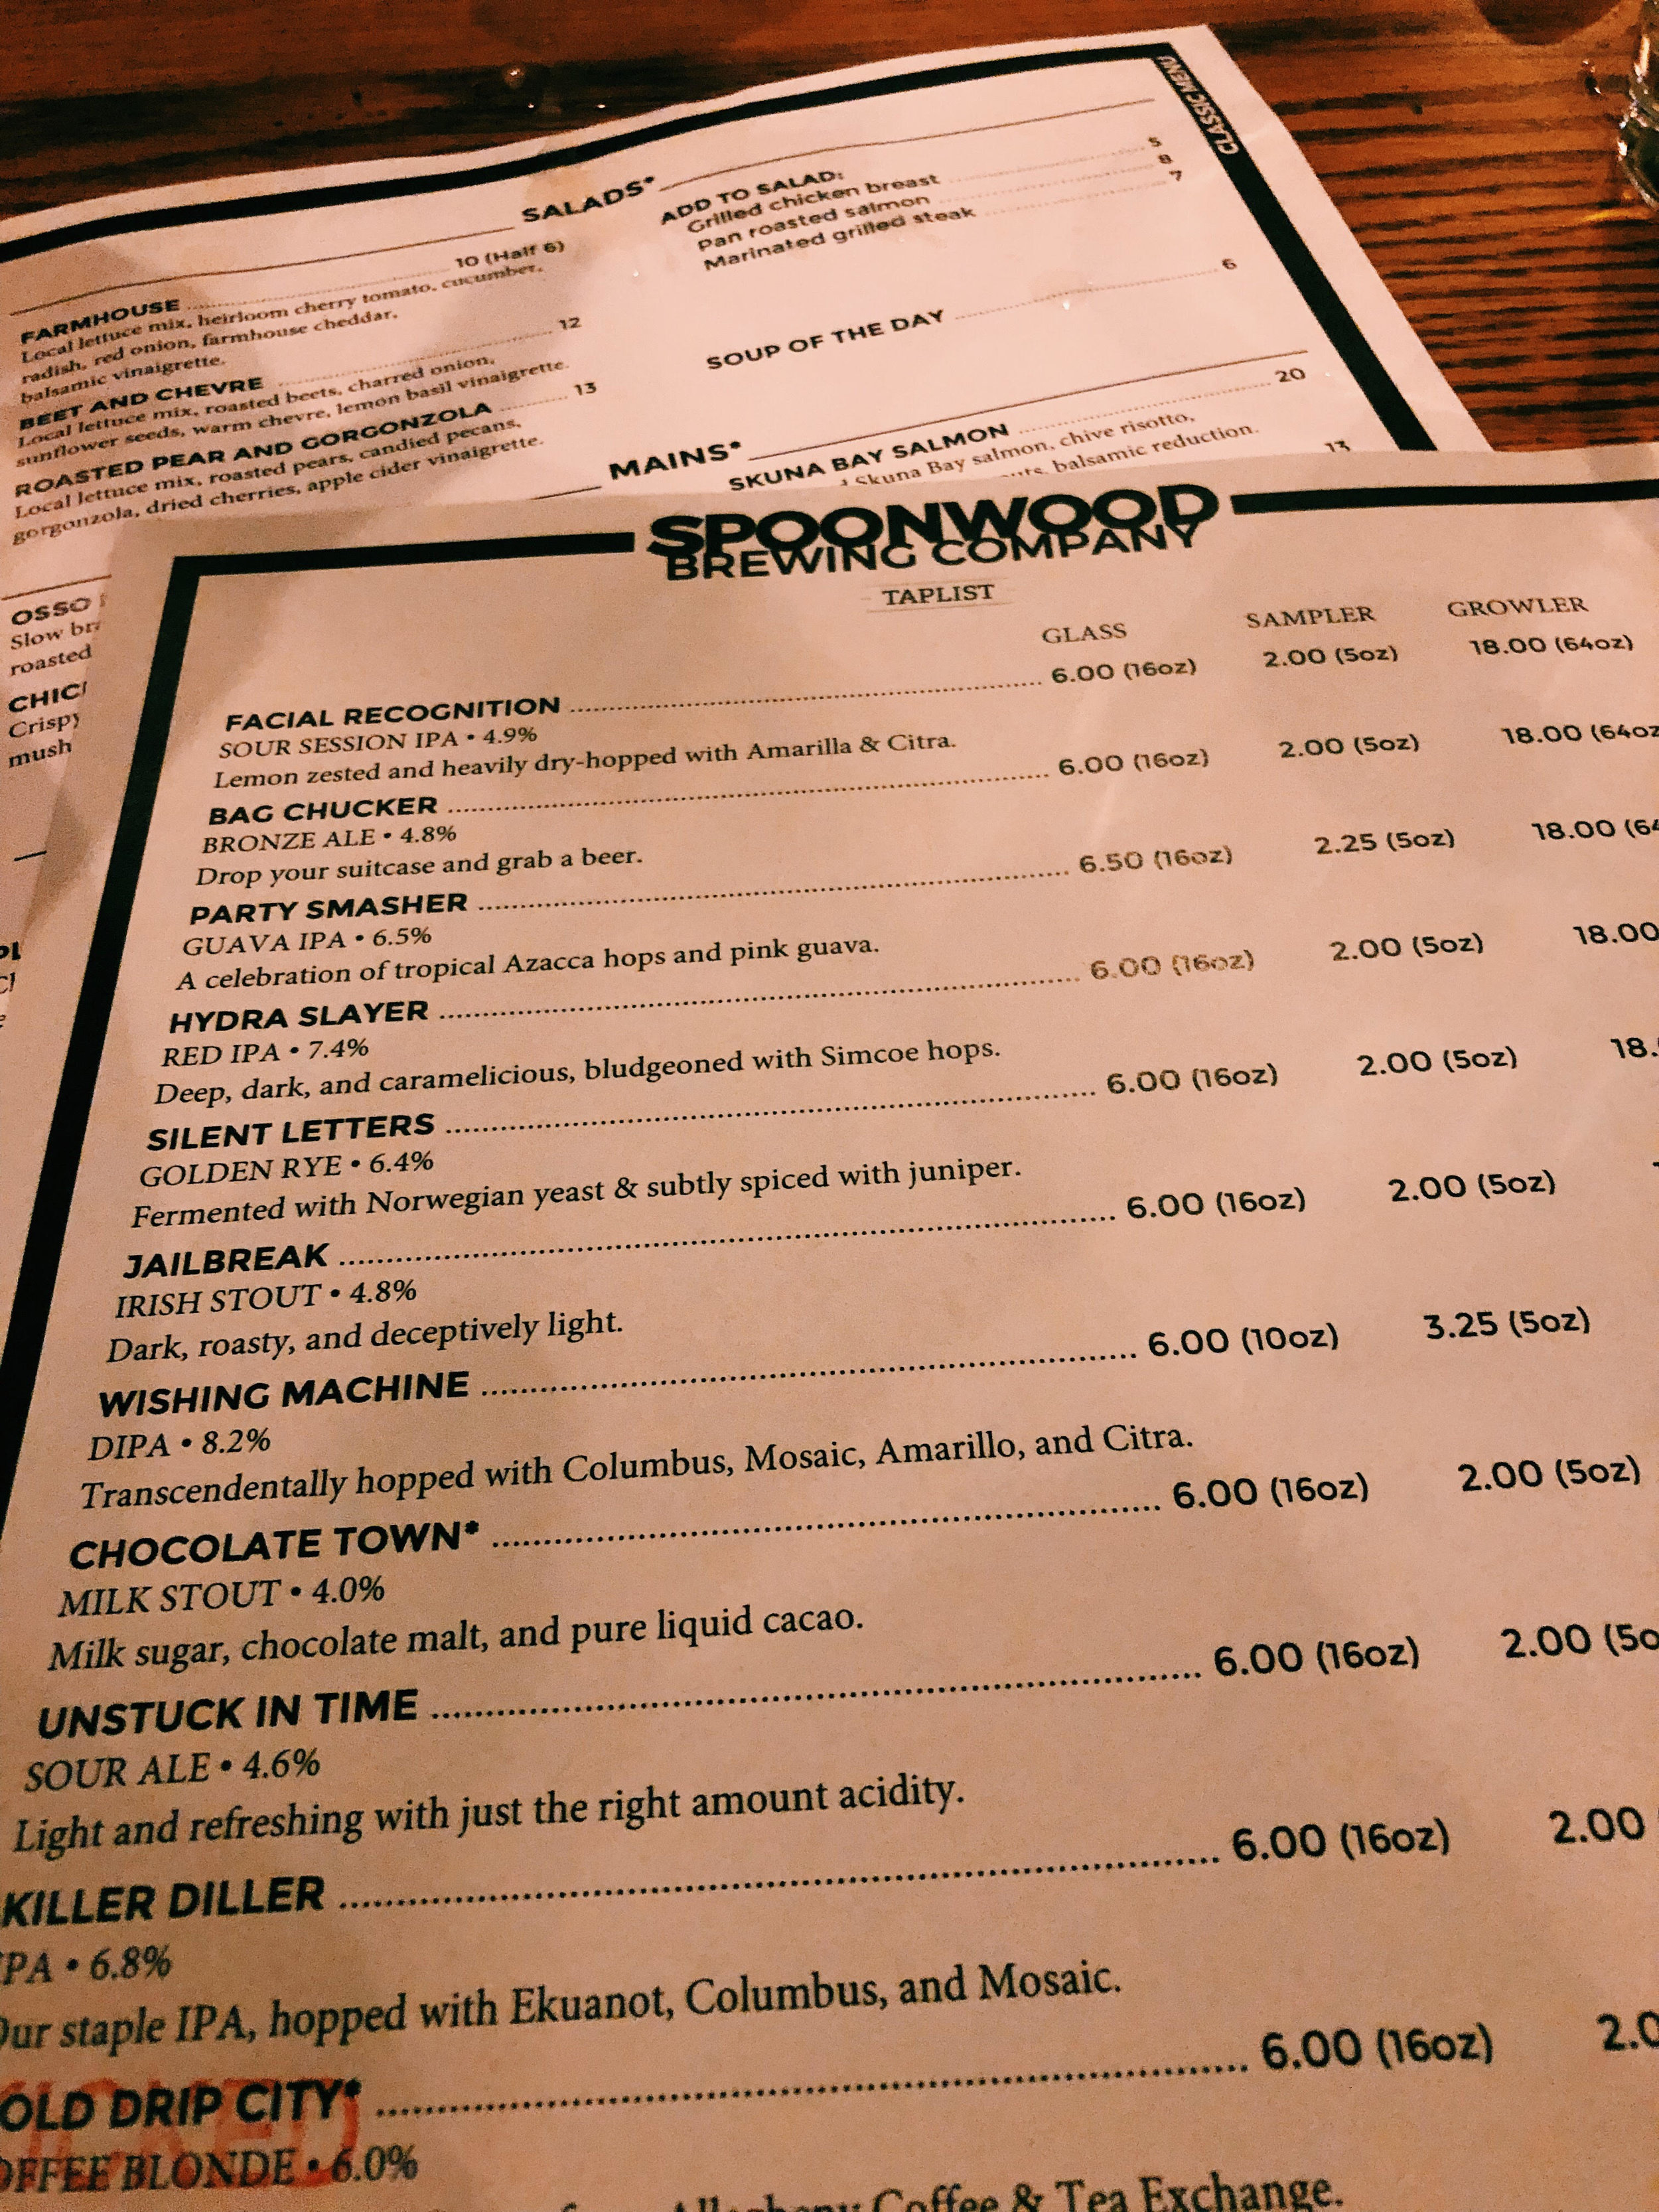 An Ever-changing Tap-list! - Spoonwood Brewery Co. Location5981 Baptist Rd, Pittsburgh, PA 15236